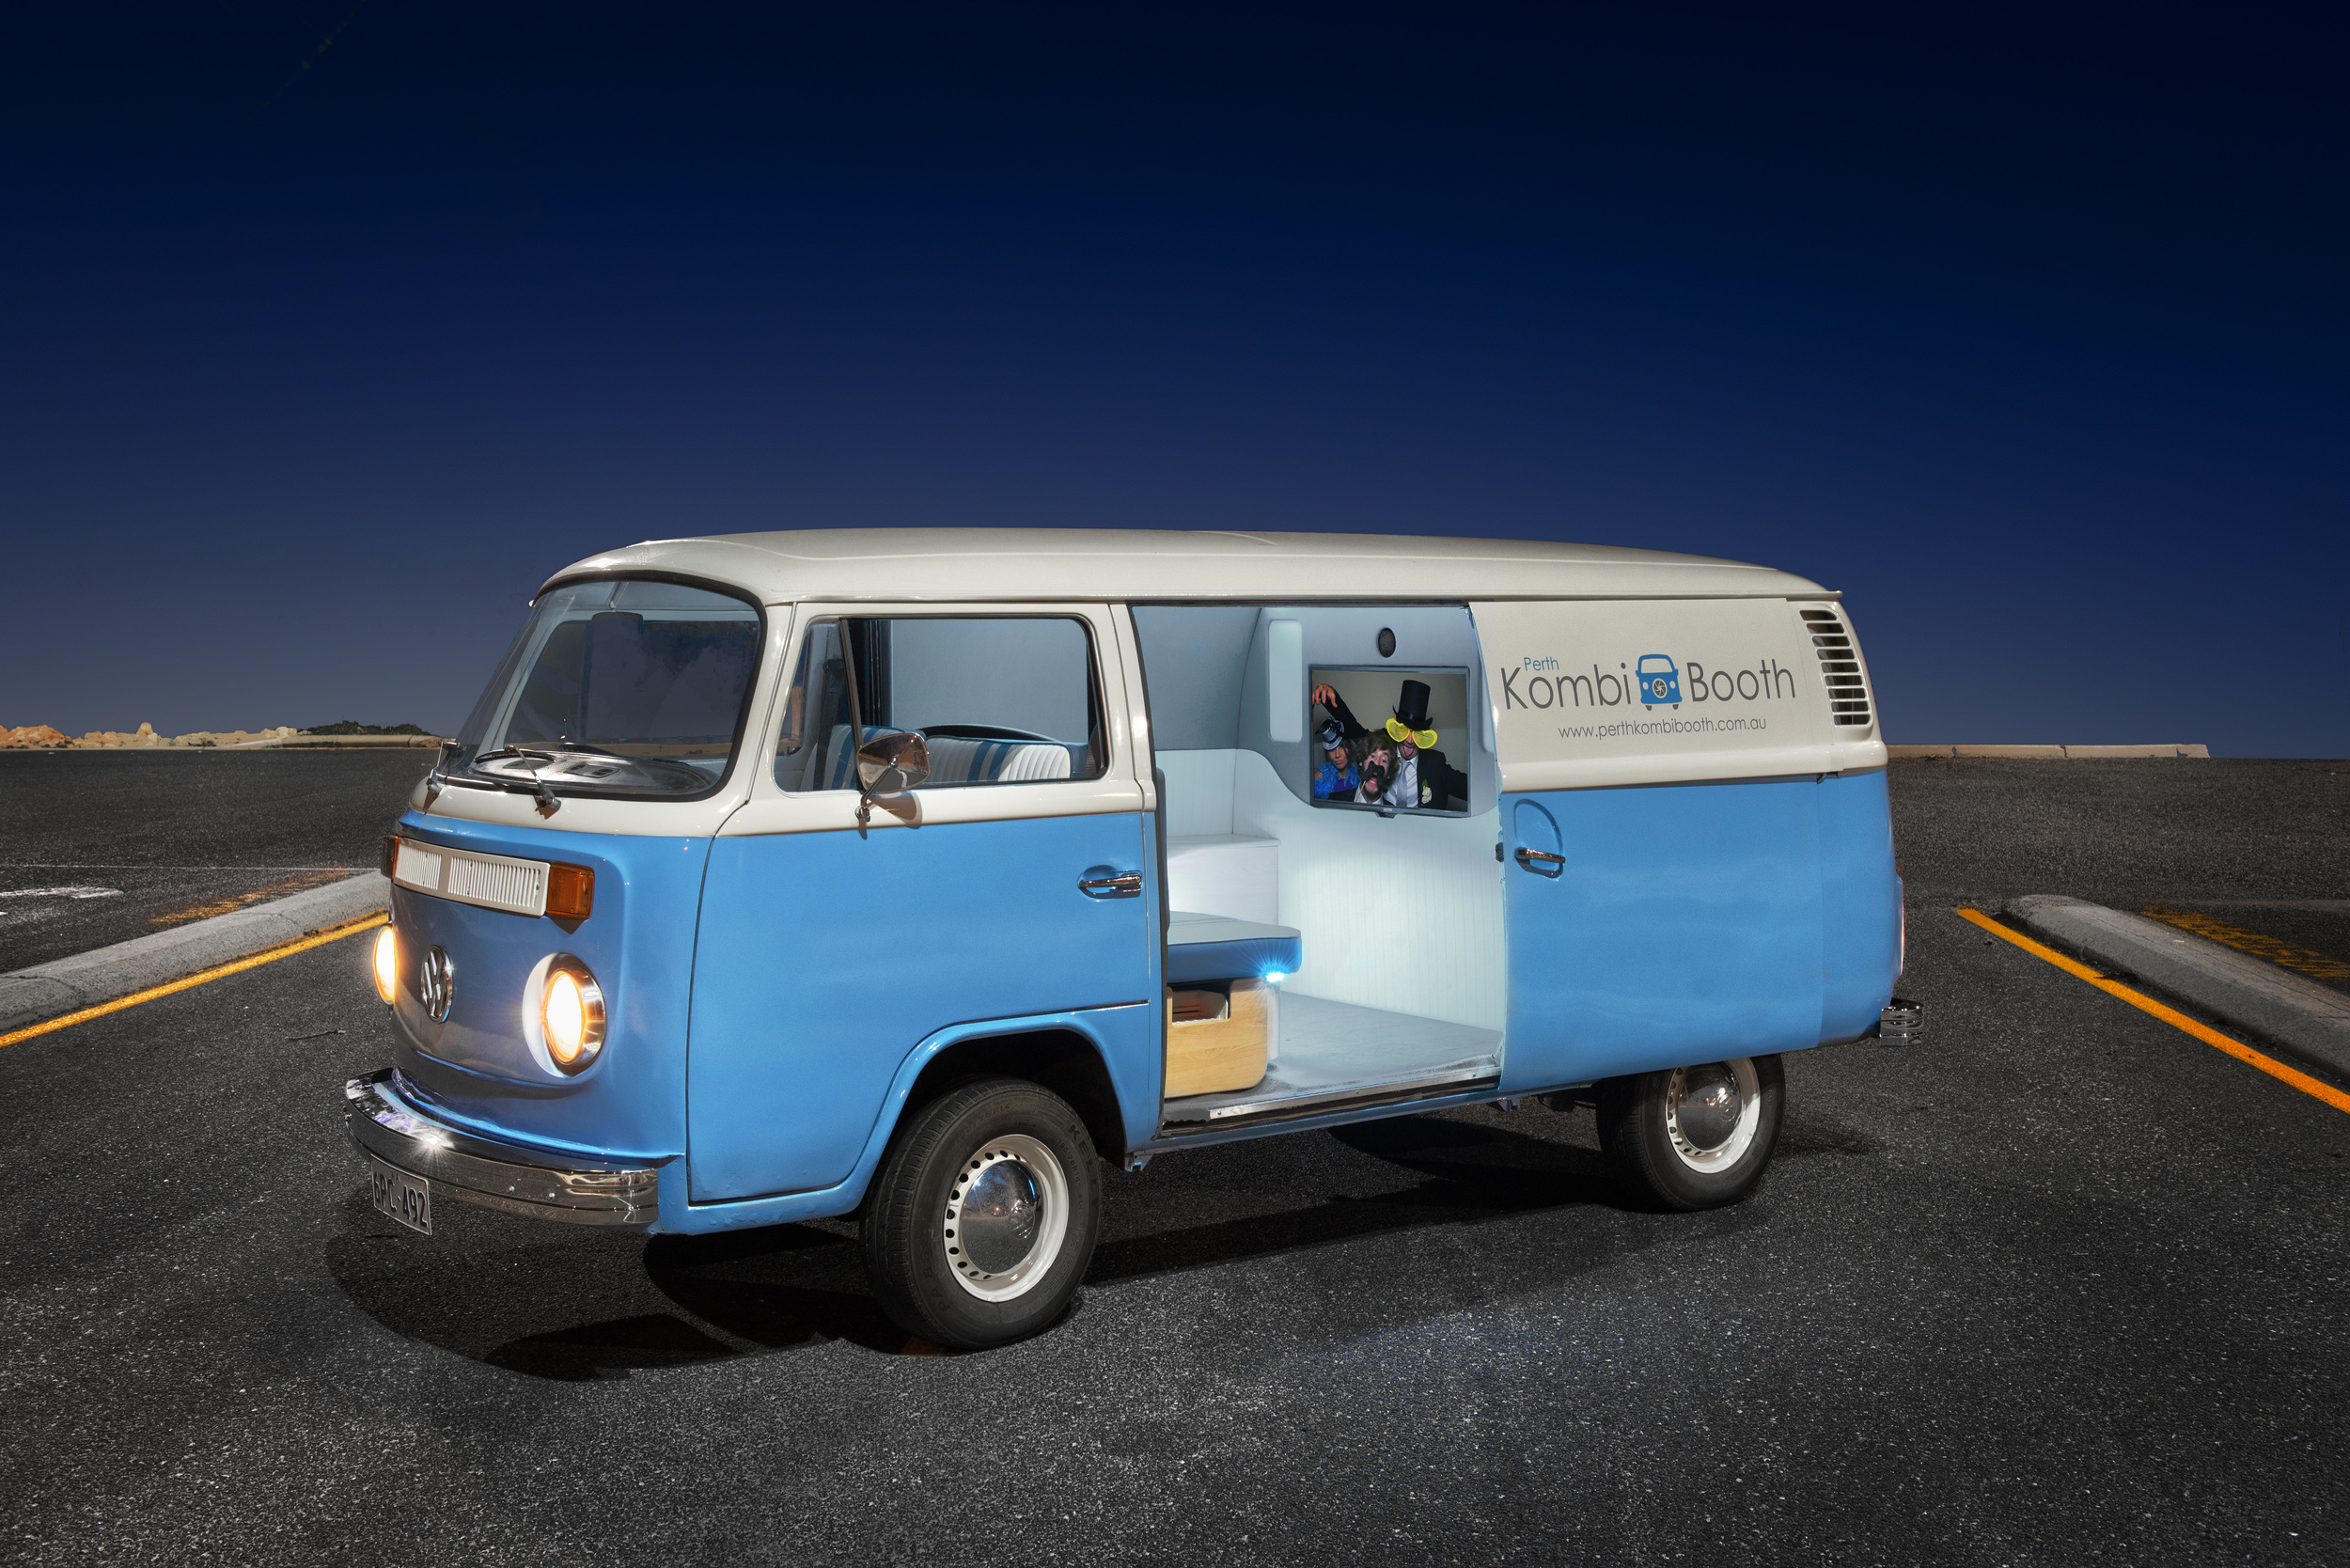 Welcome to Perth Kombi Booth! The most fun you can have in a Kombi…EVER!